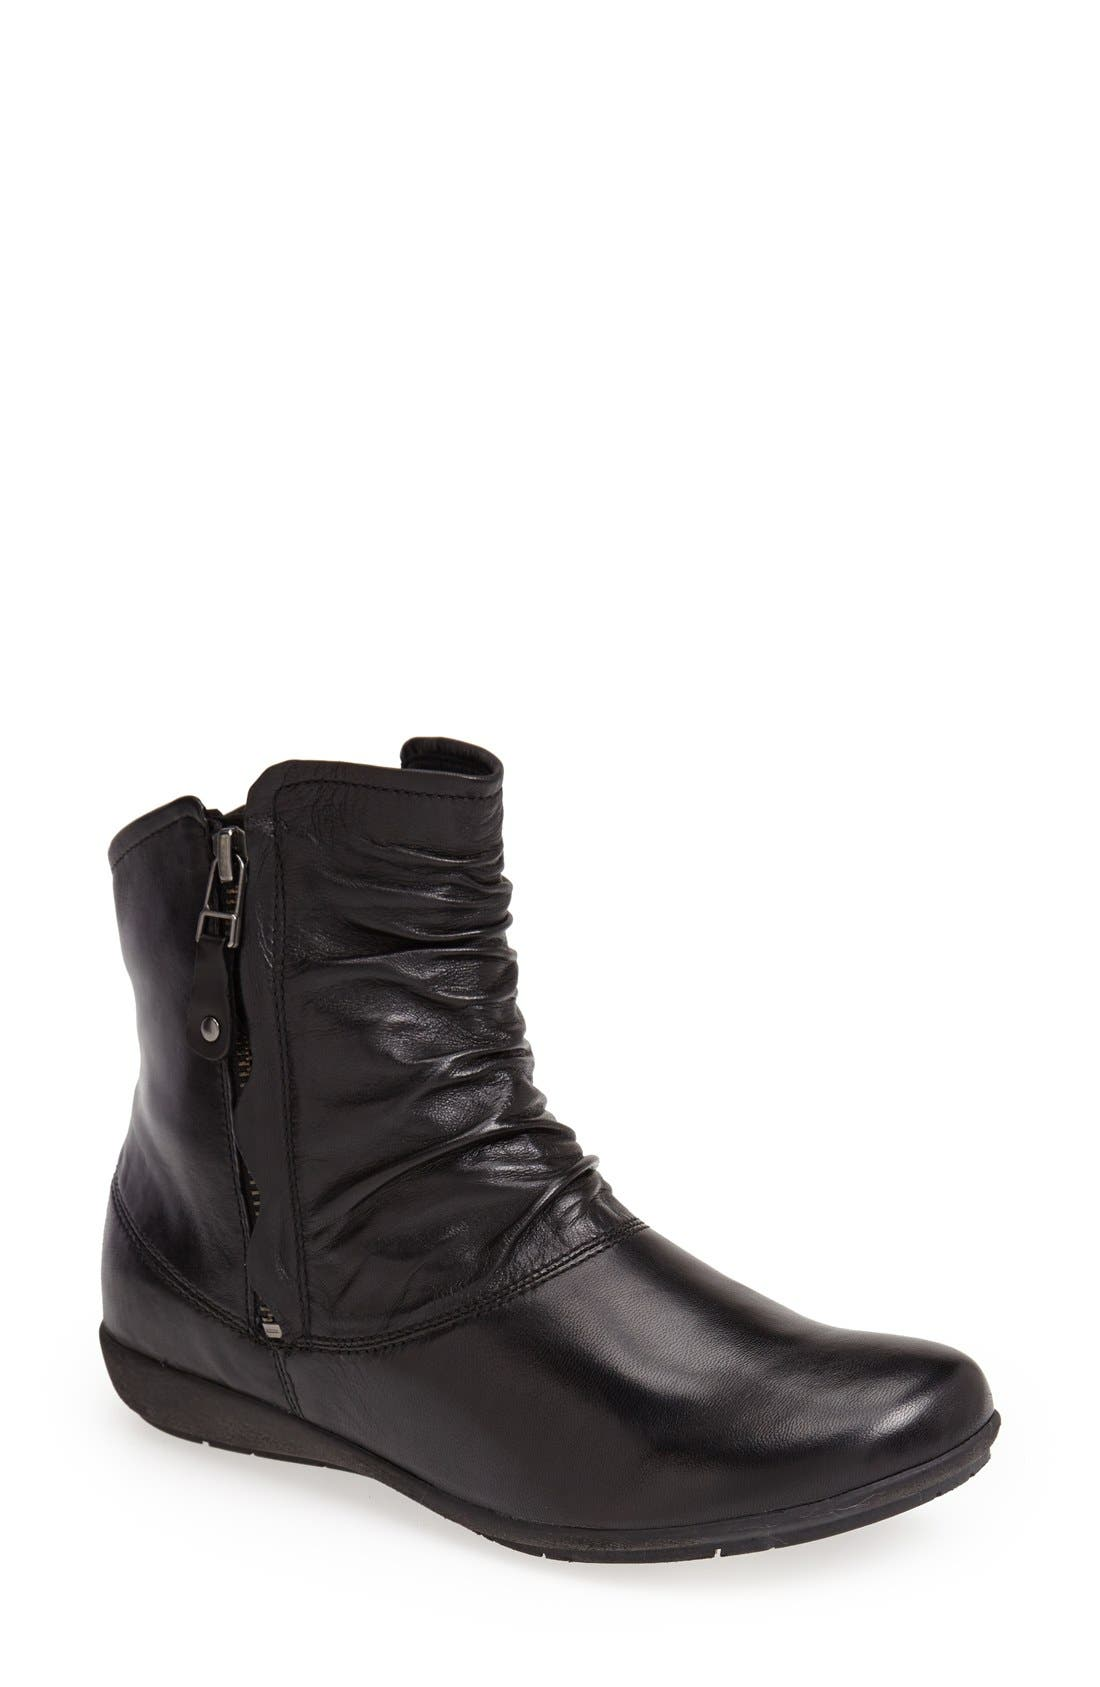 Alternate Image 1 Selected - Josef Seibel 'Faye 05' Boot (Women)